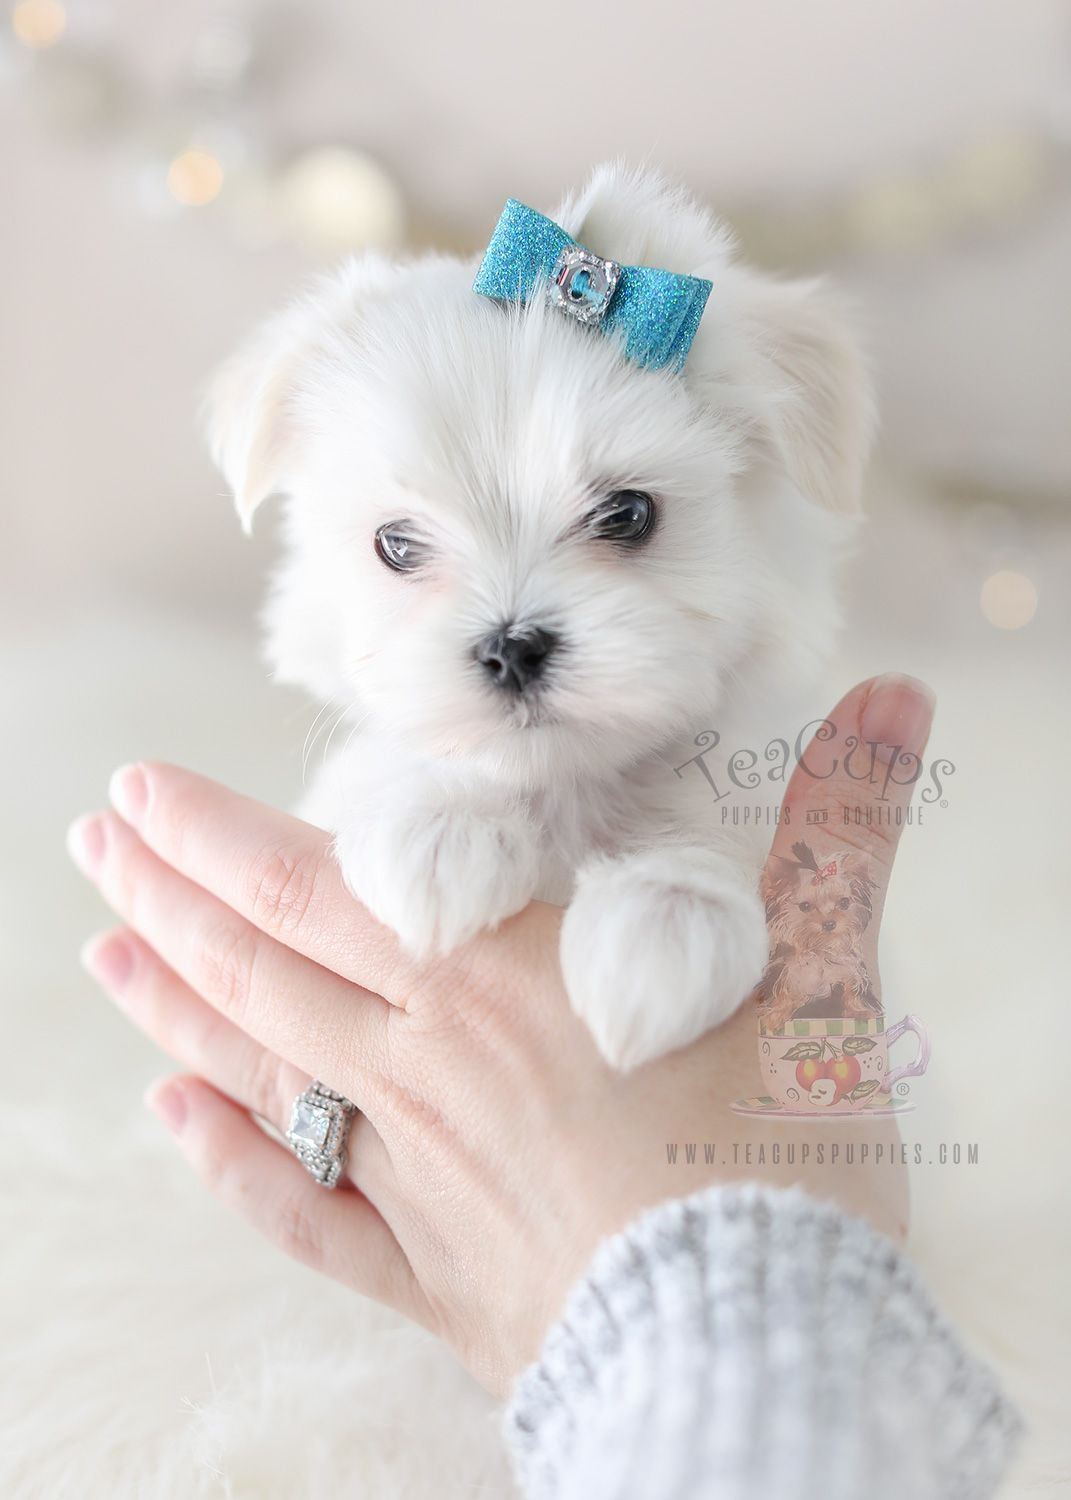 Any And All Dog Related Questions Are Answered Here Continue With The Details At The Image Link Petd Maltese Puppy Teacup Puppies Teacup Puppies For Sale